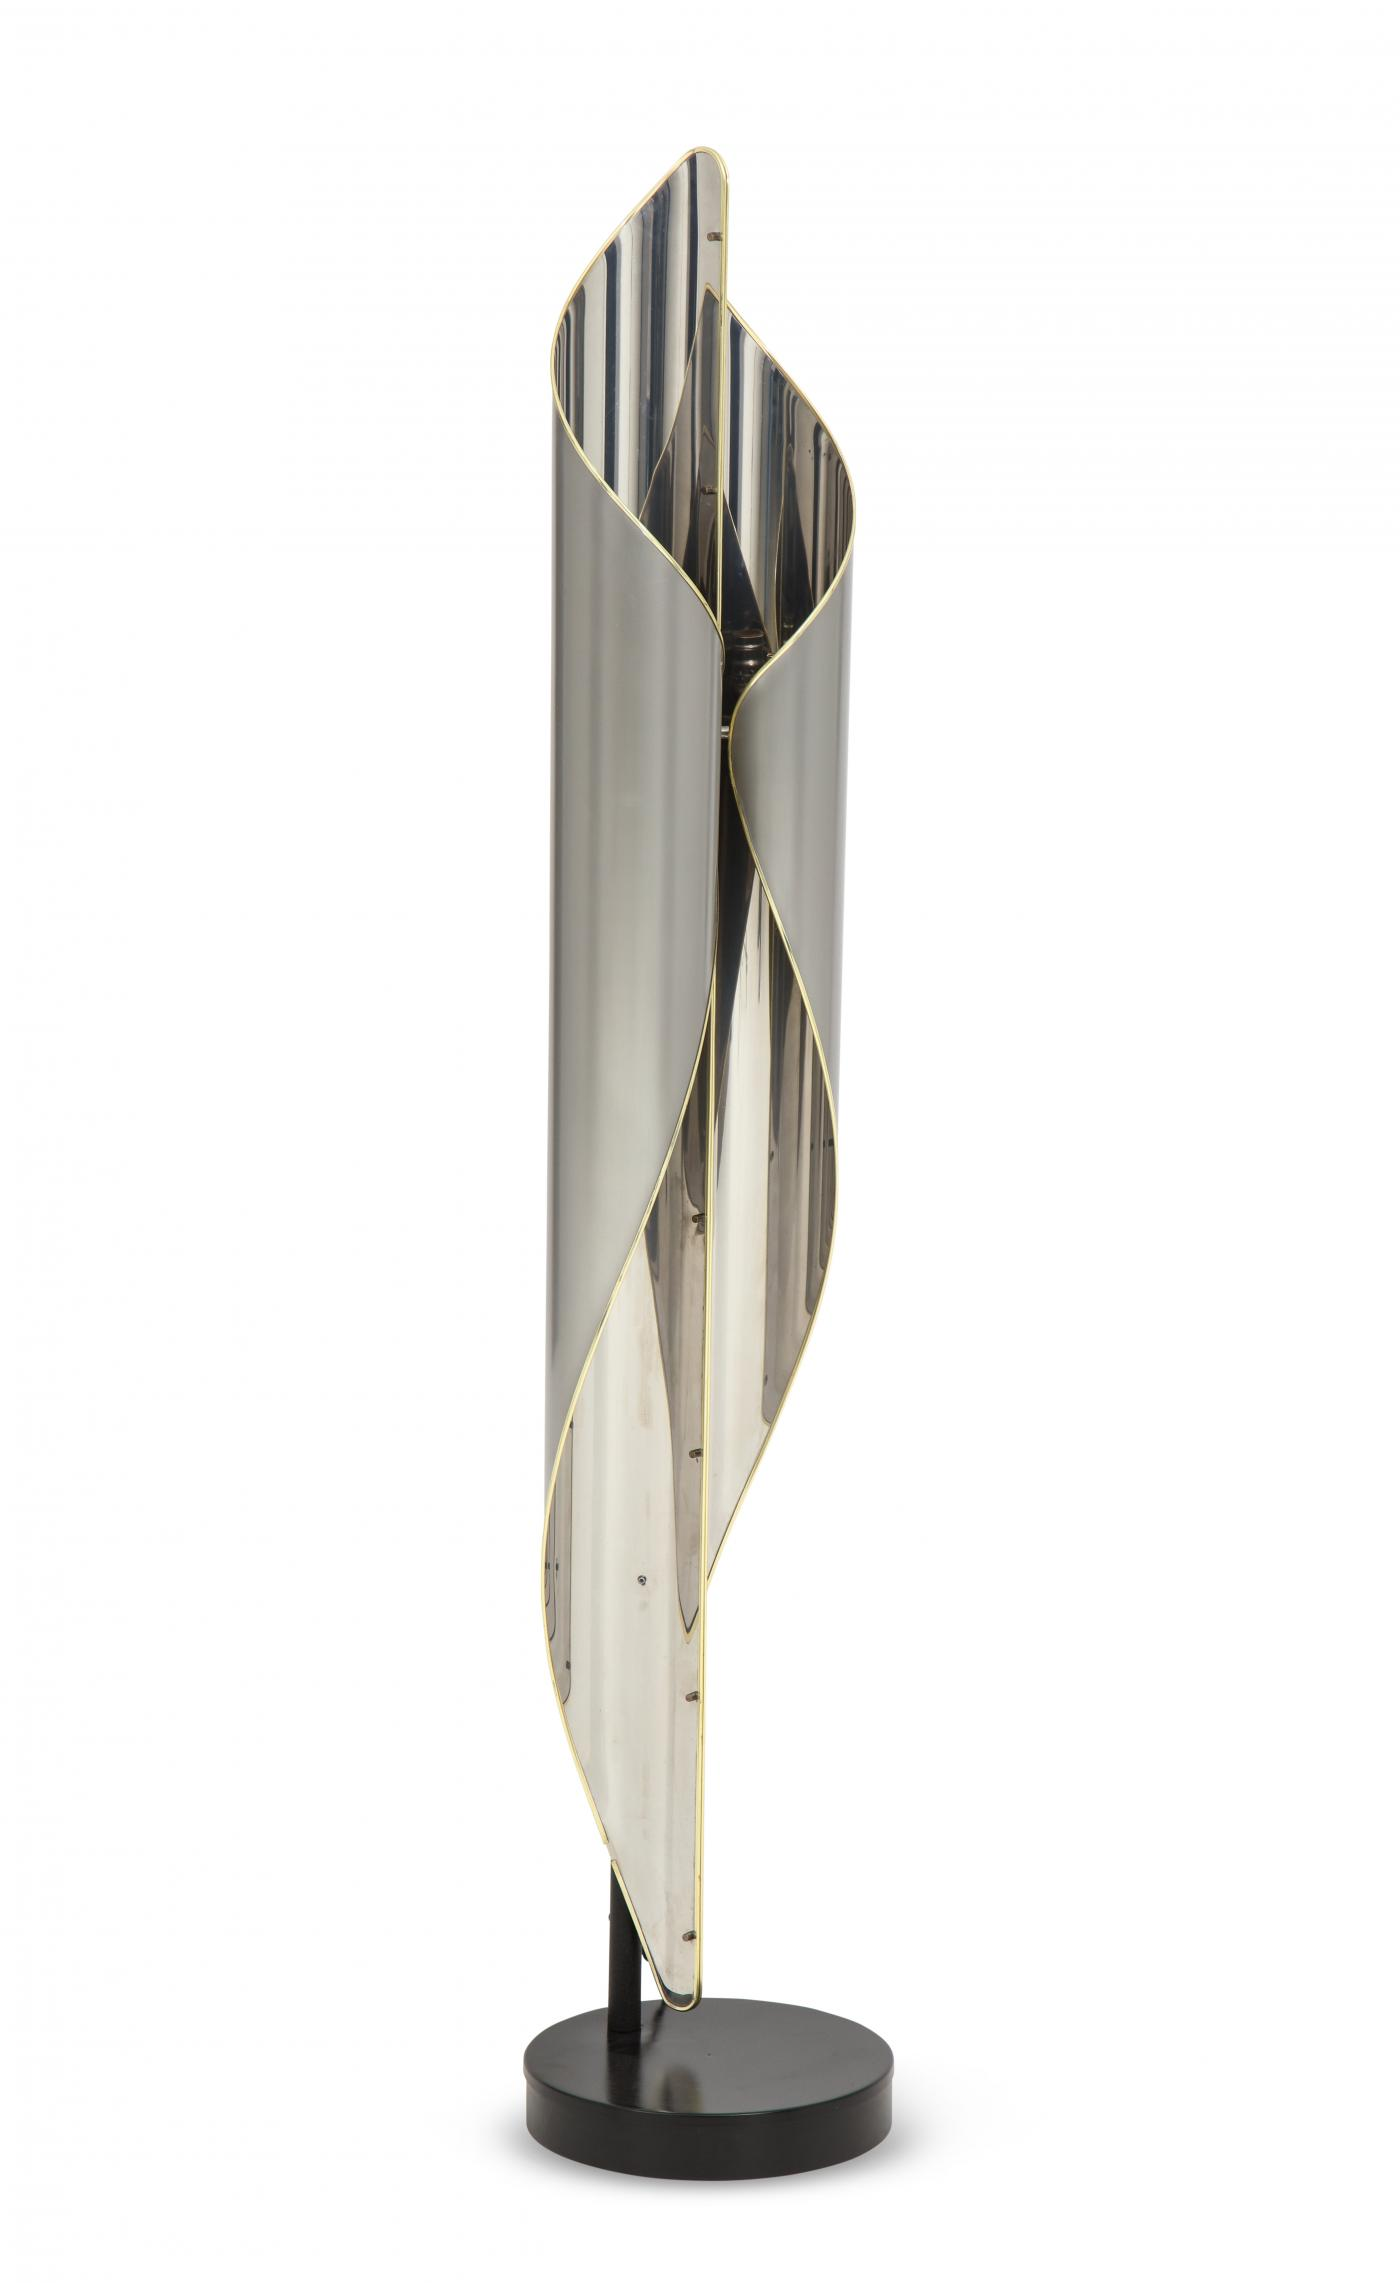 Floor lamp in chrome and steel combined with Brass details.